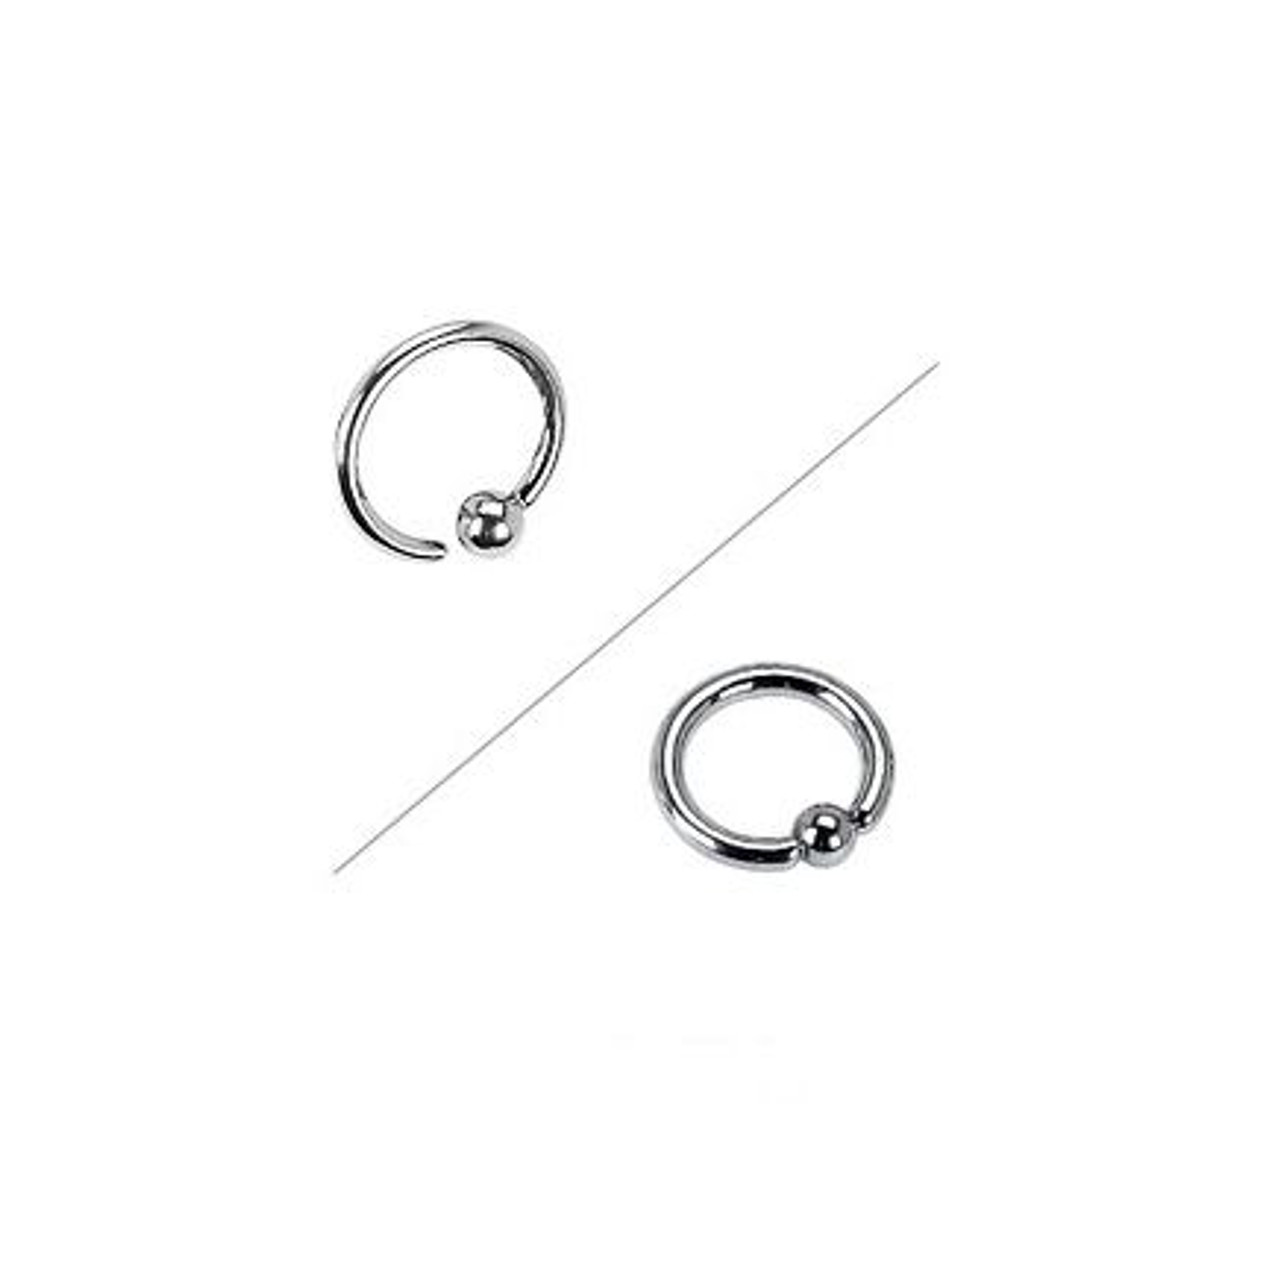 316L Surgical Steel One Side Fixed Captive Bead Ring